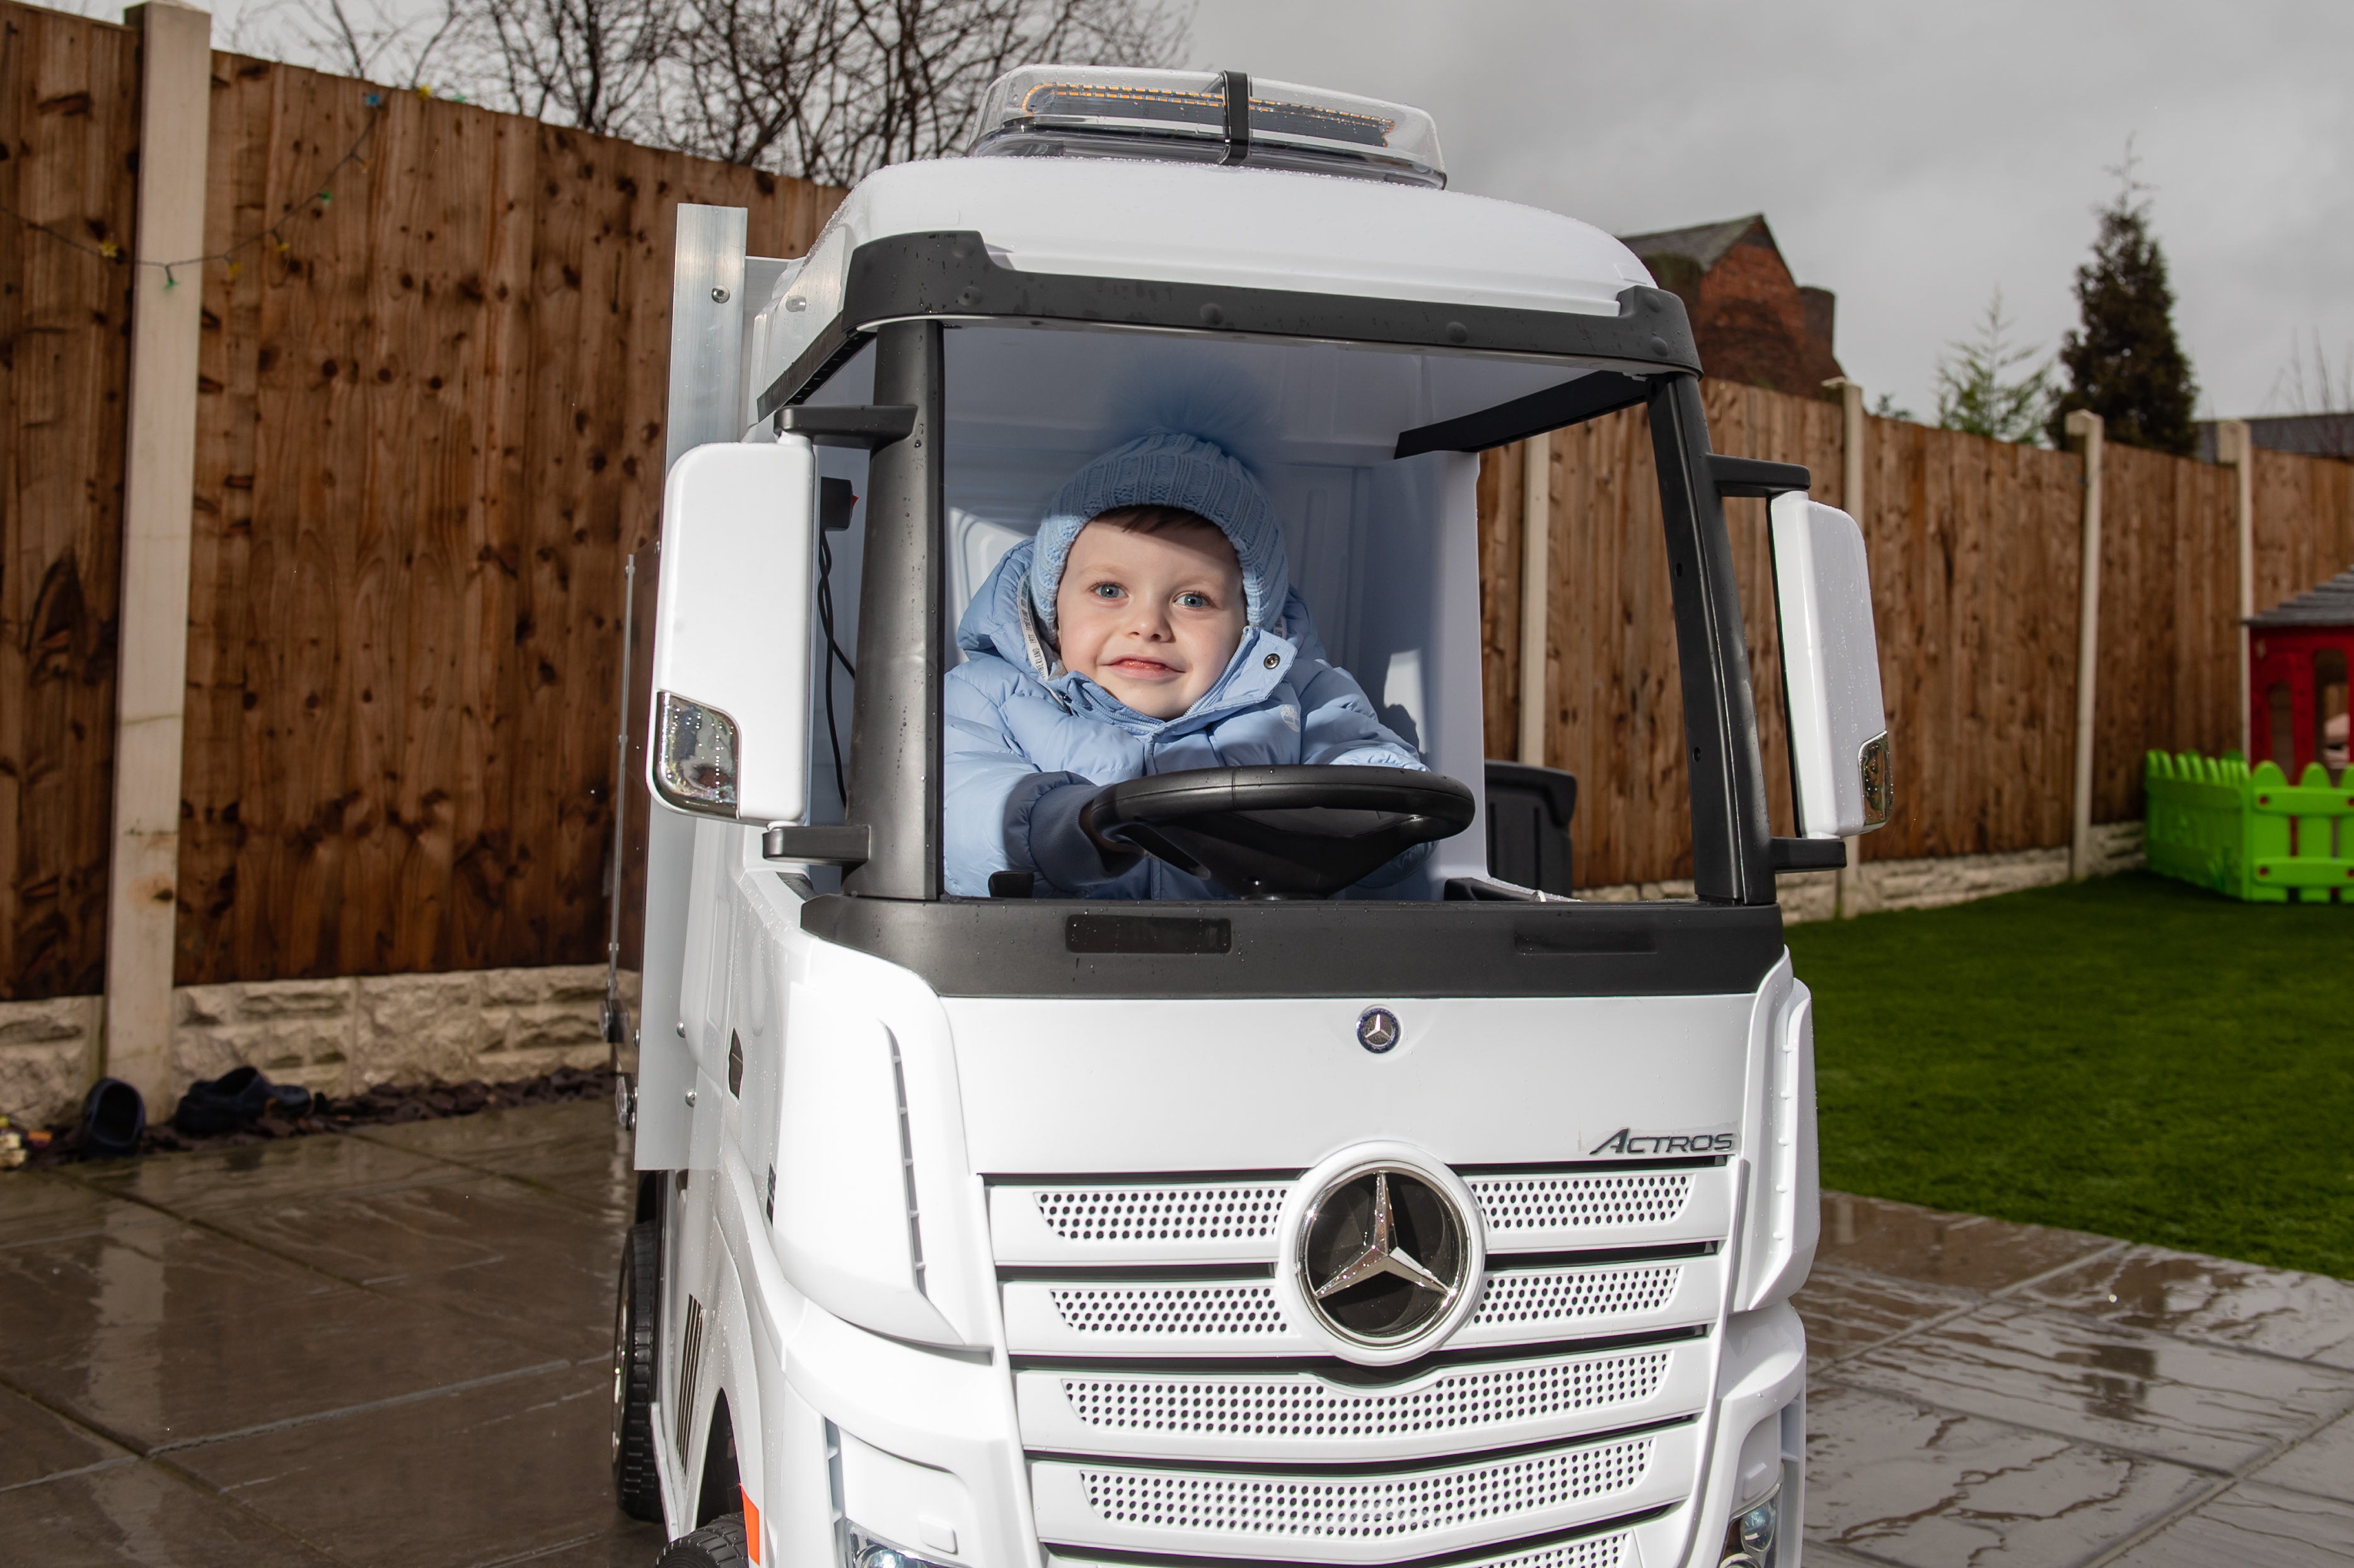 Little Hugene Wilkes, 4, loves nothing more than travelling around his local park in the impressive toy, which has a top speed of 5mph and a battery life of over an hour. (SWNS)